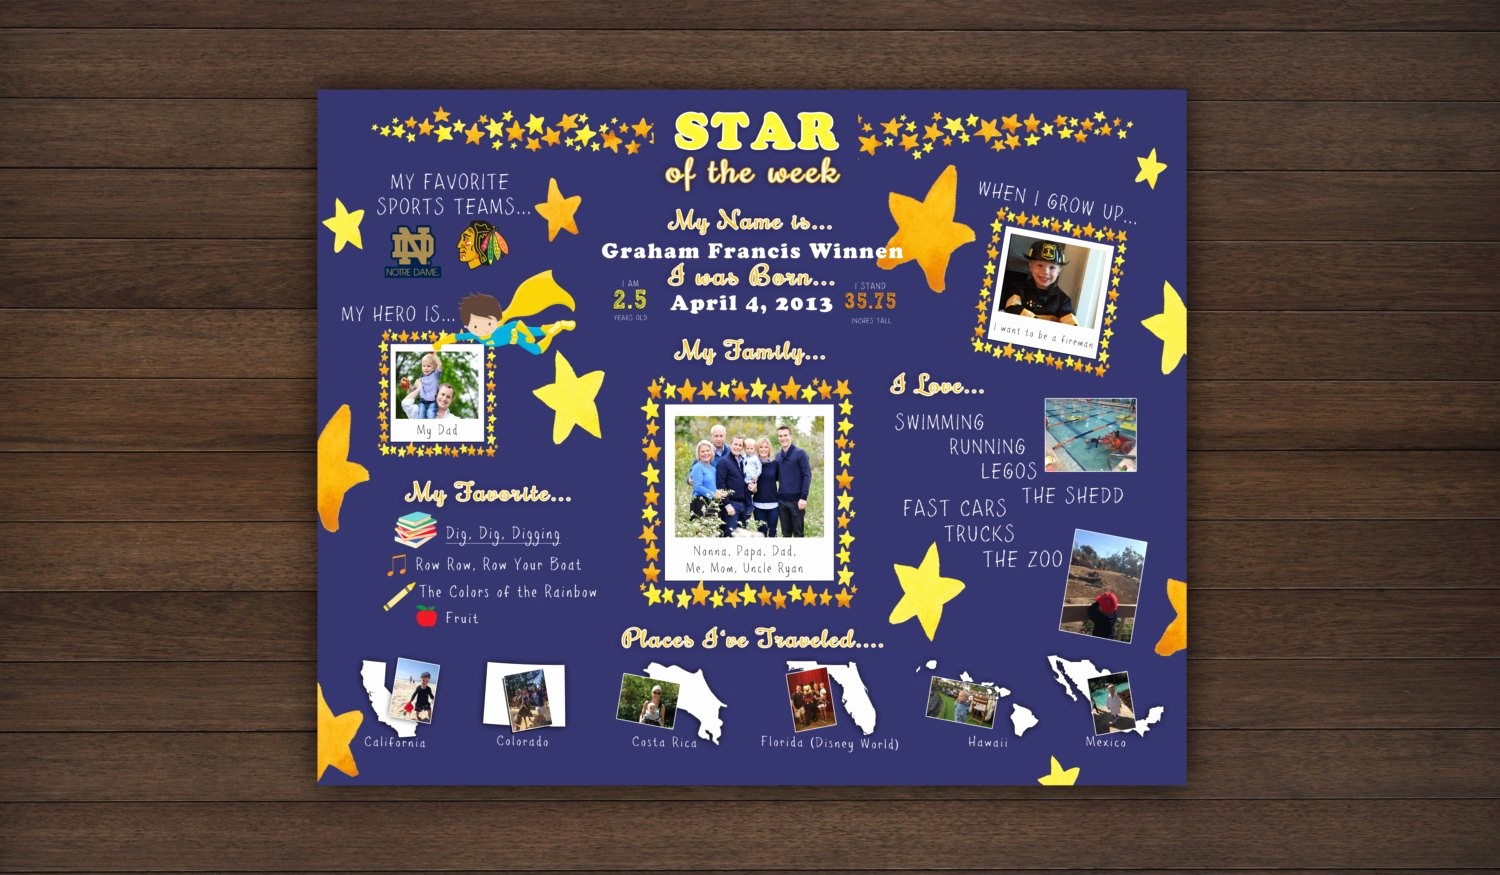 Student Of the Week Posters Awesome Star Of the Week Poster Custom Star Of the Week Preschool